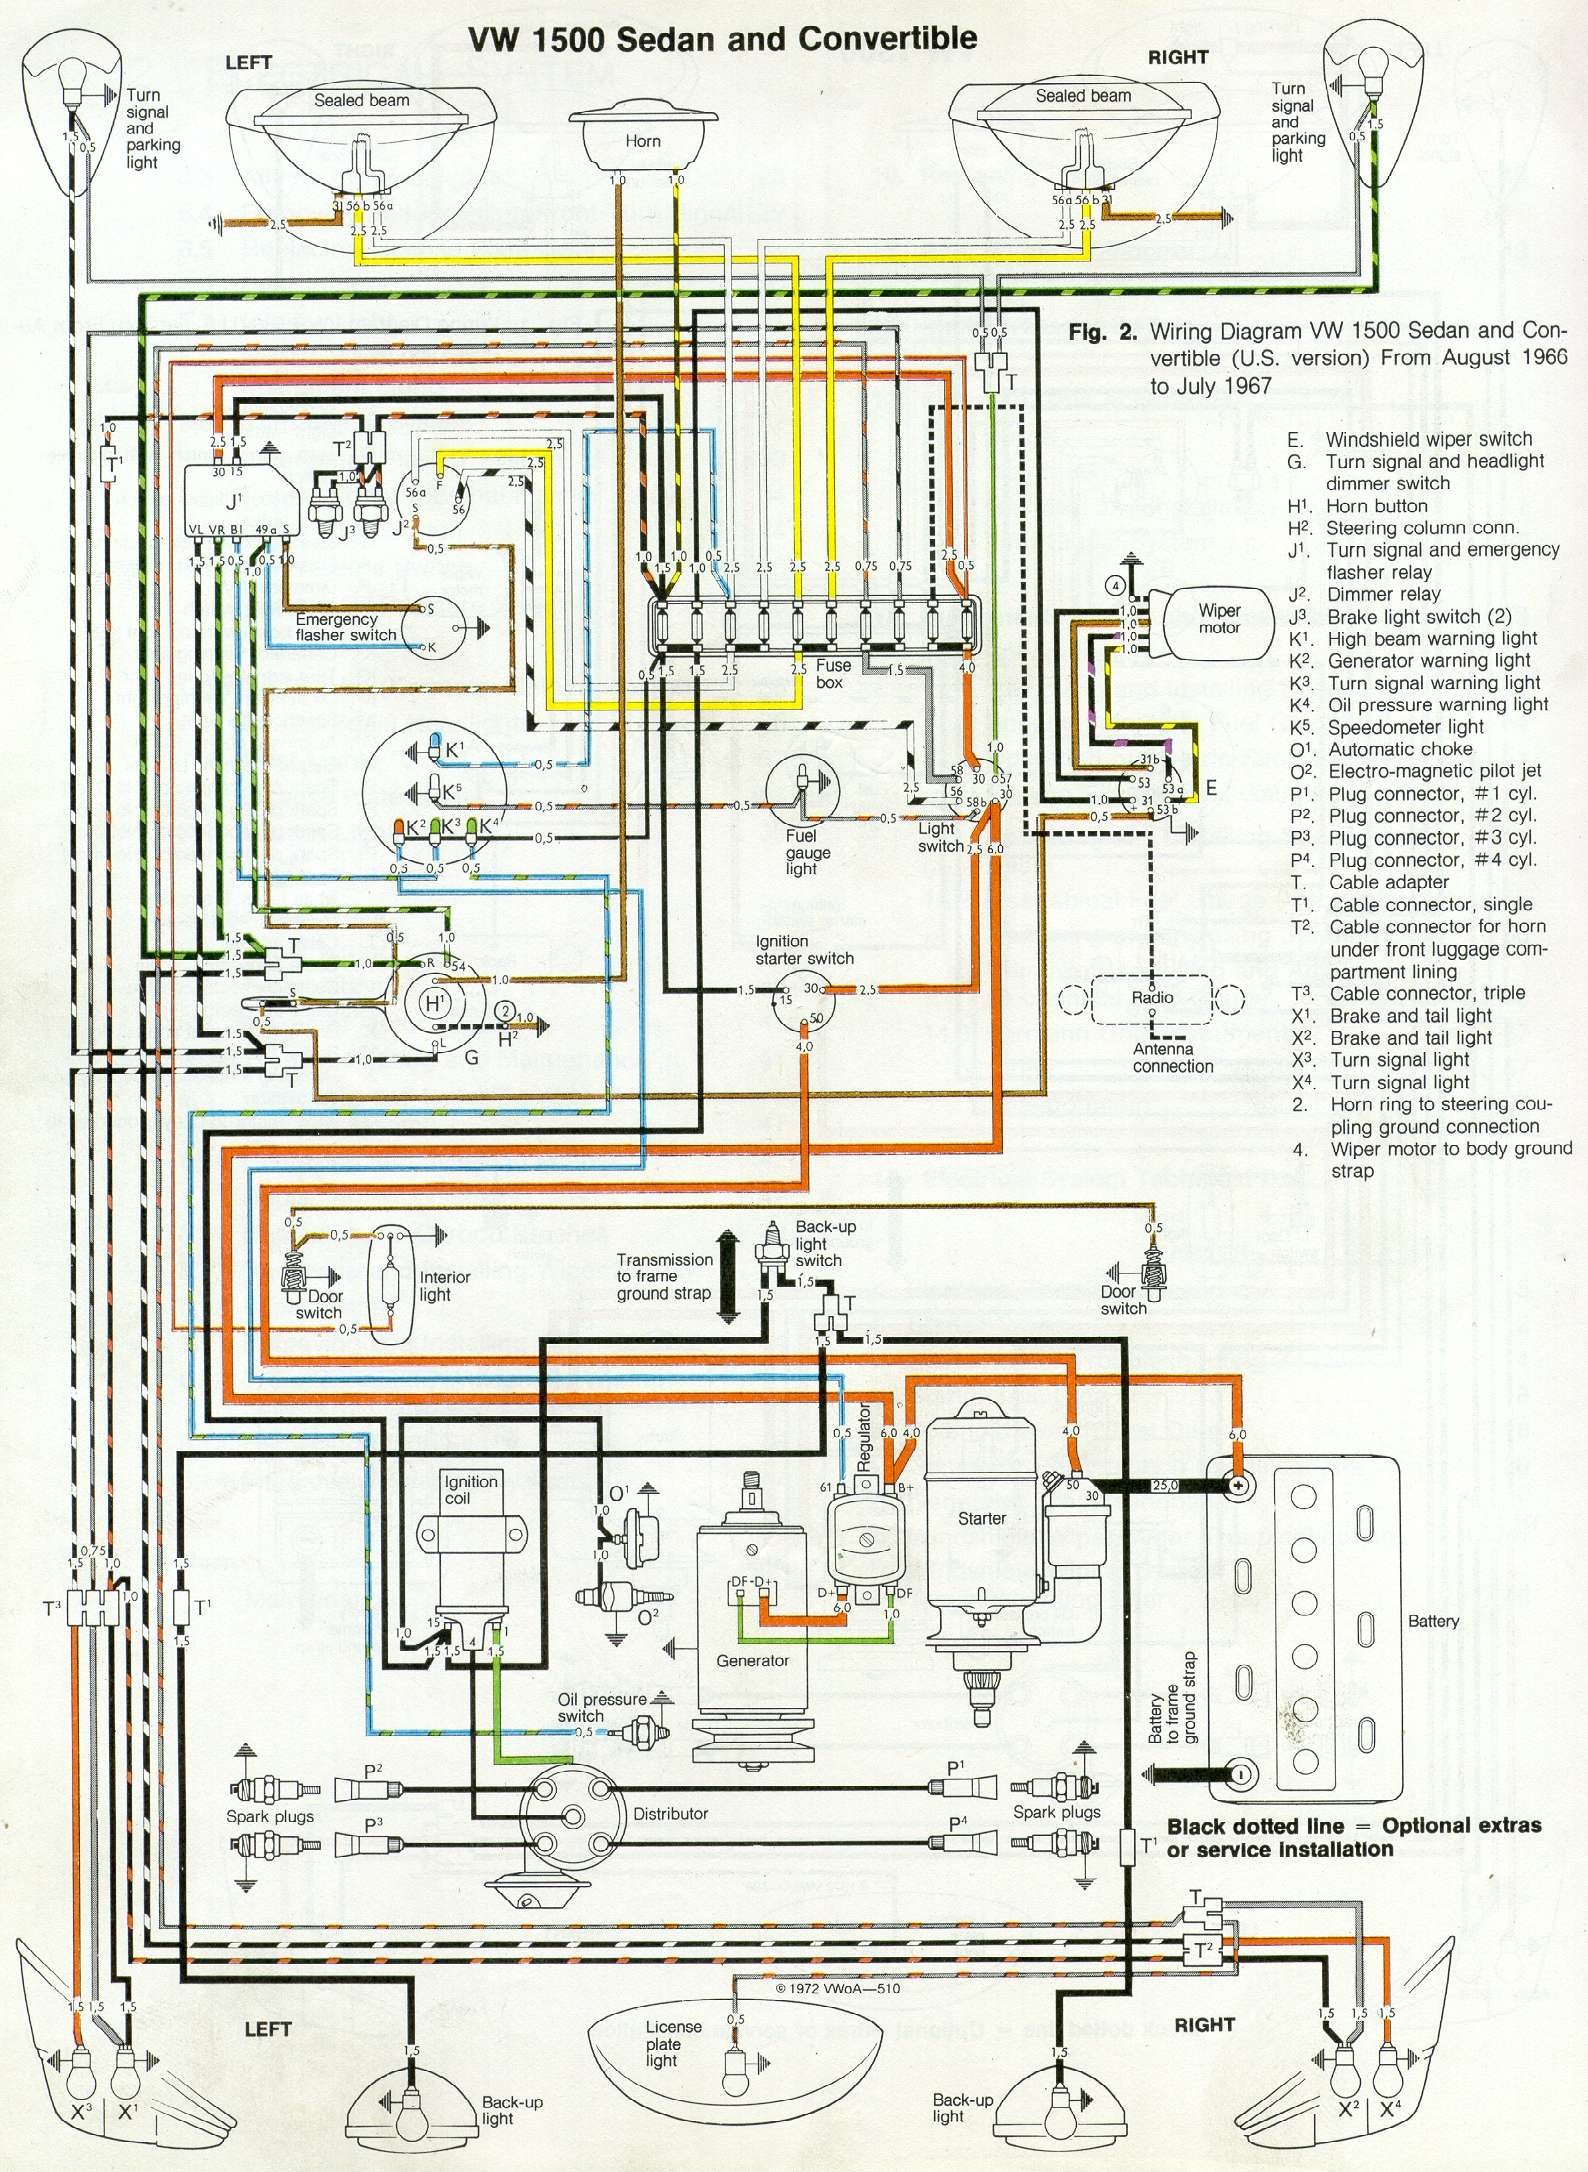 VW bug_1967 other diagrams wiring diagram 69 vw beetle at suagrazia.org